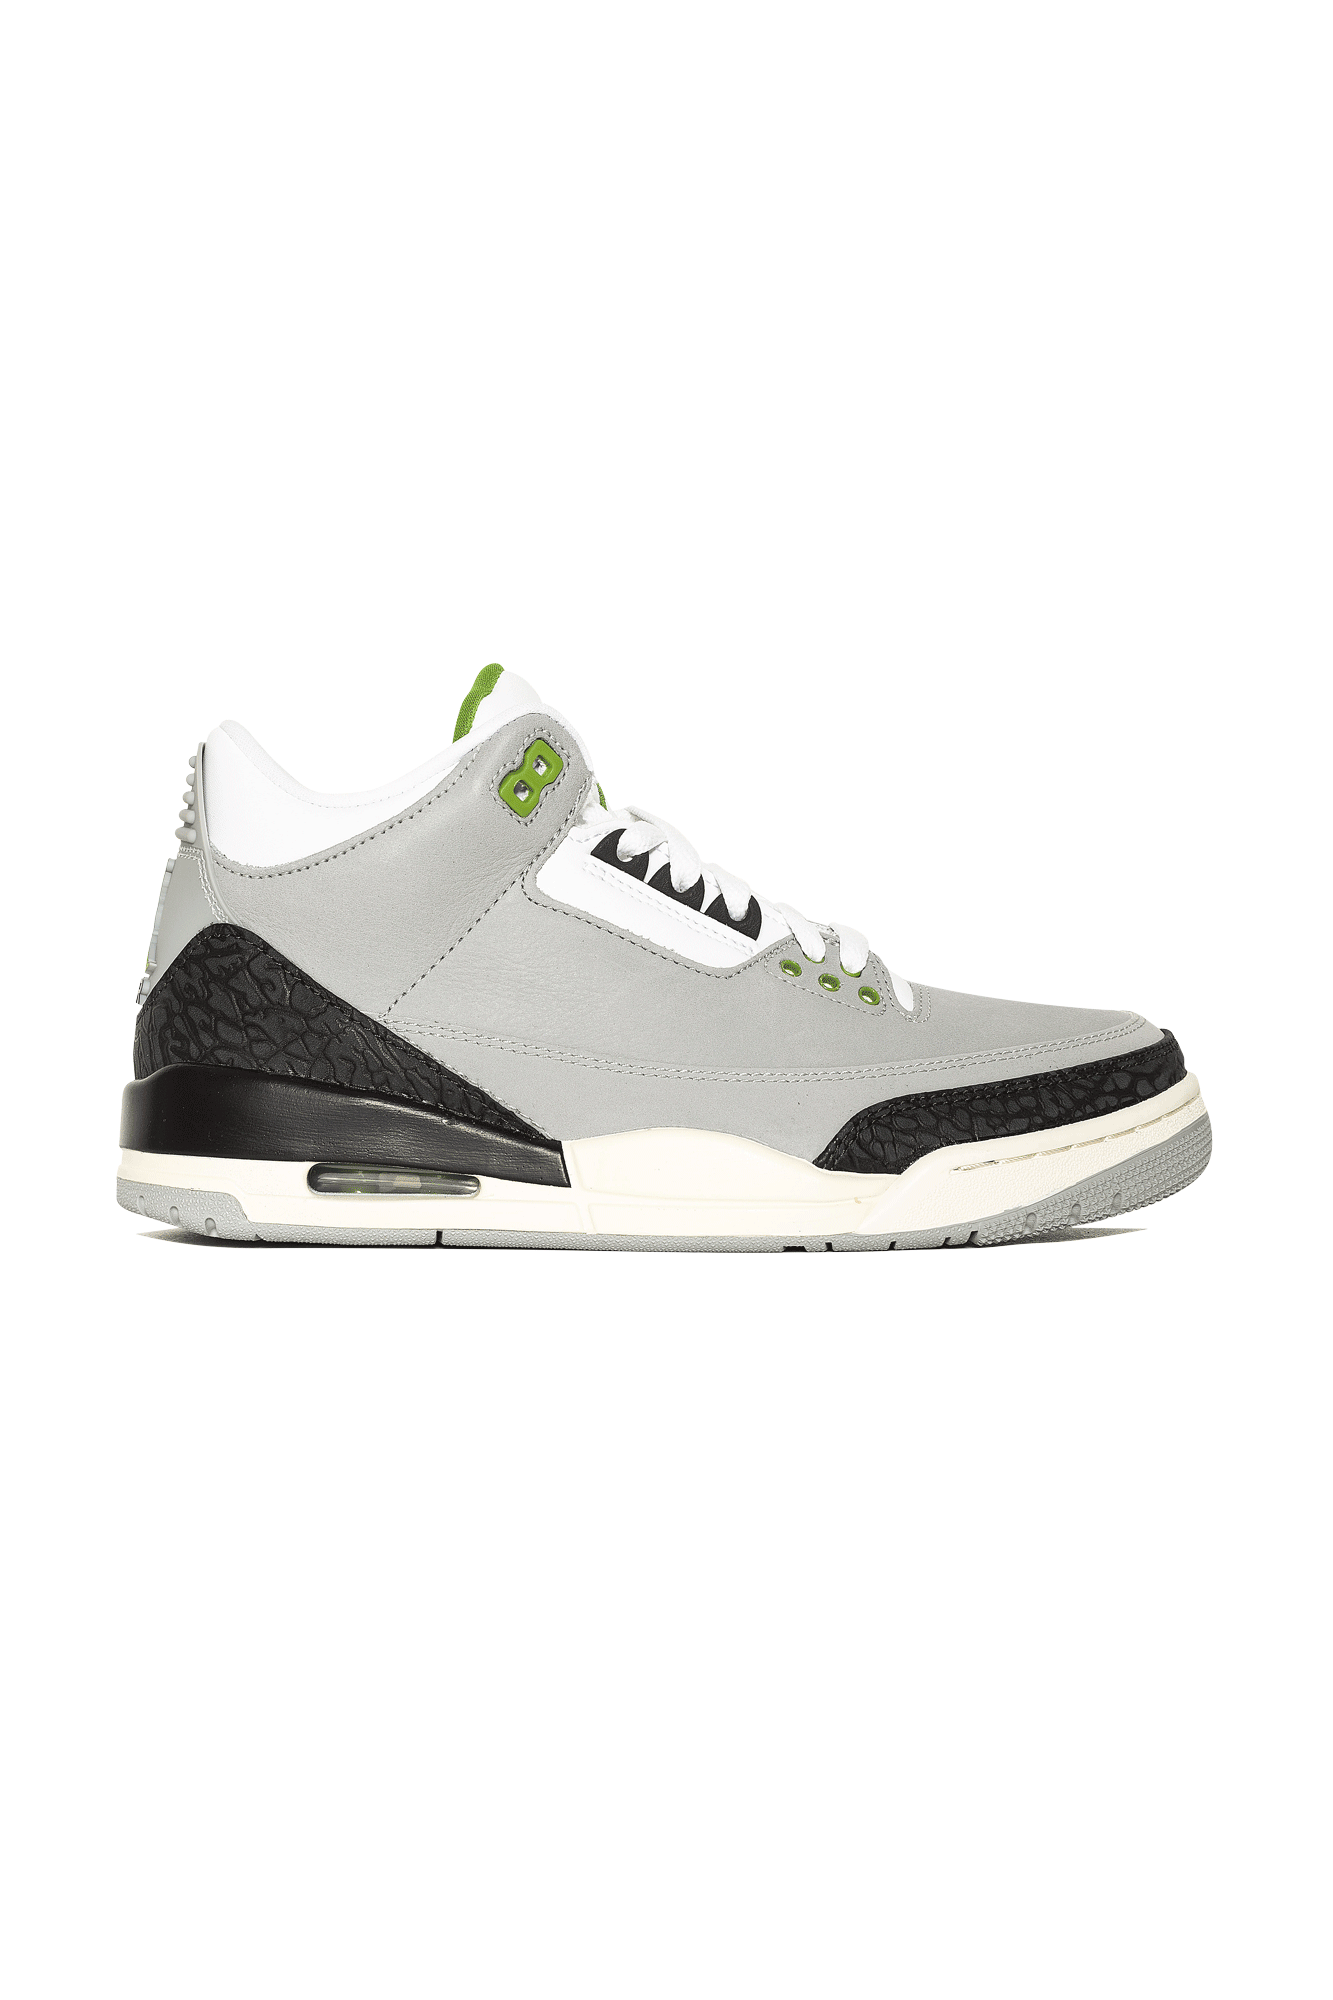 Sneakers Air Jordan 3 Retro Grey - One Block Down